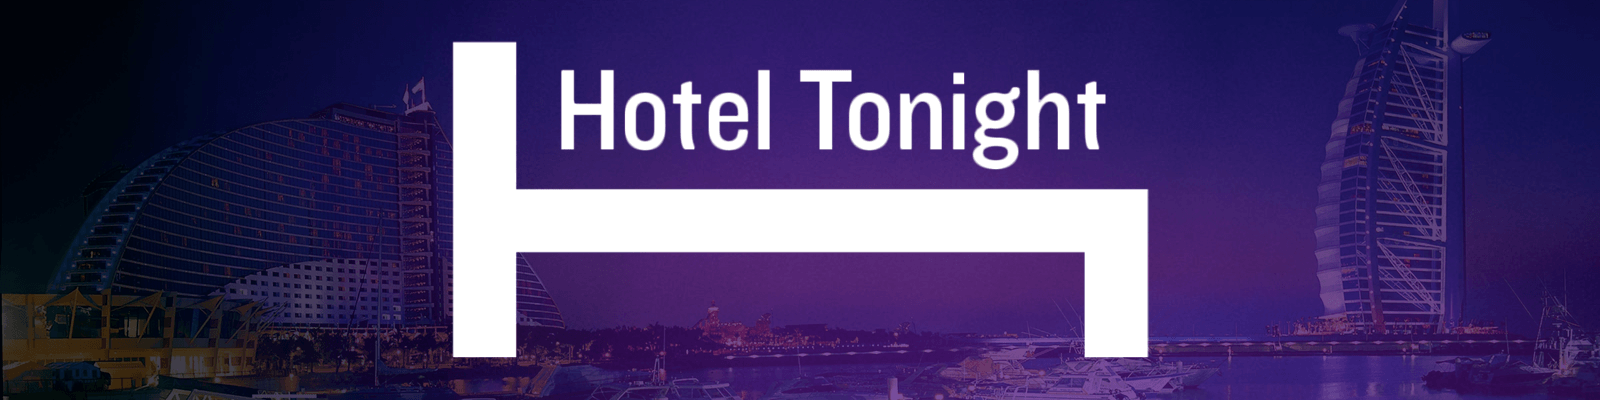 hotel tonight application development cost